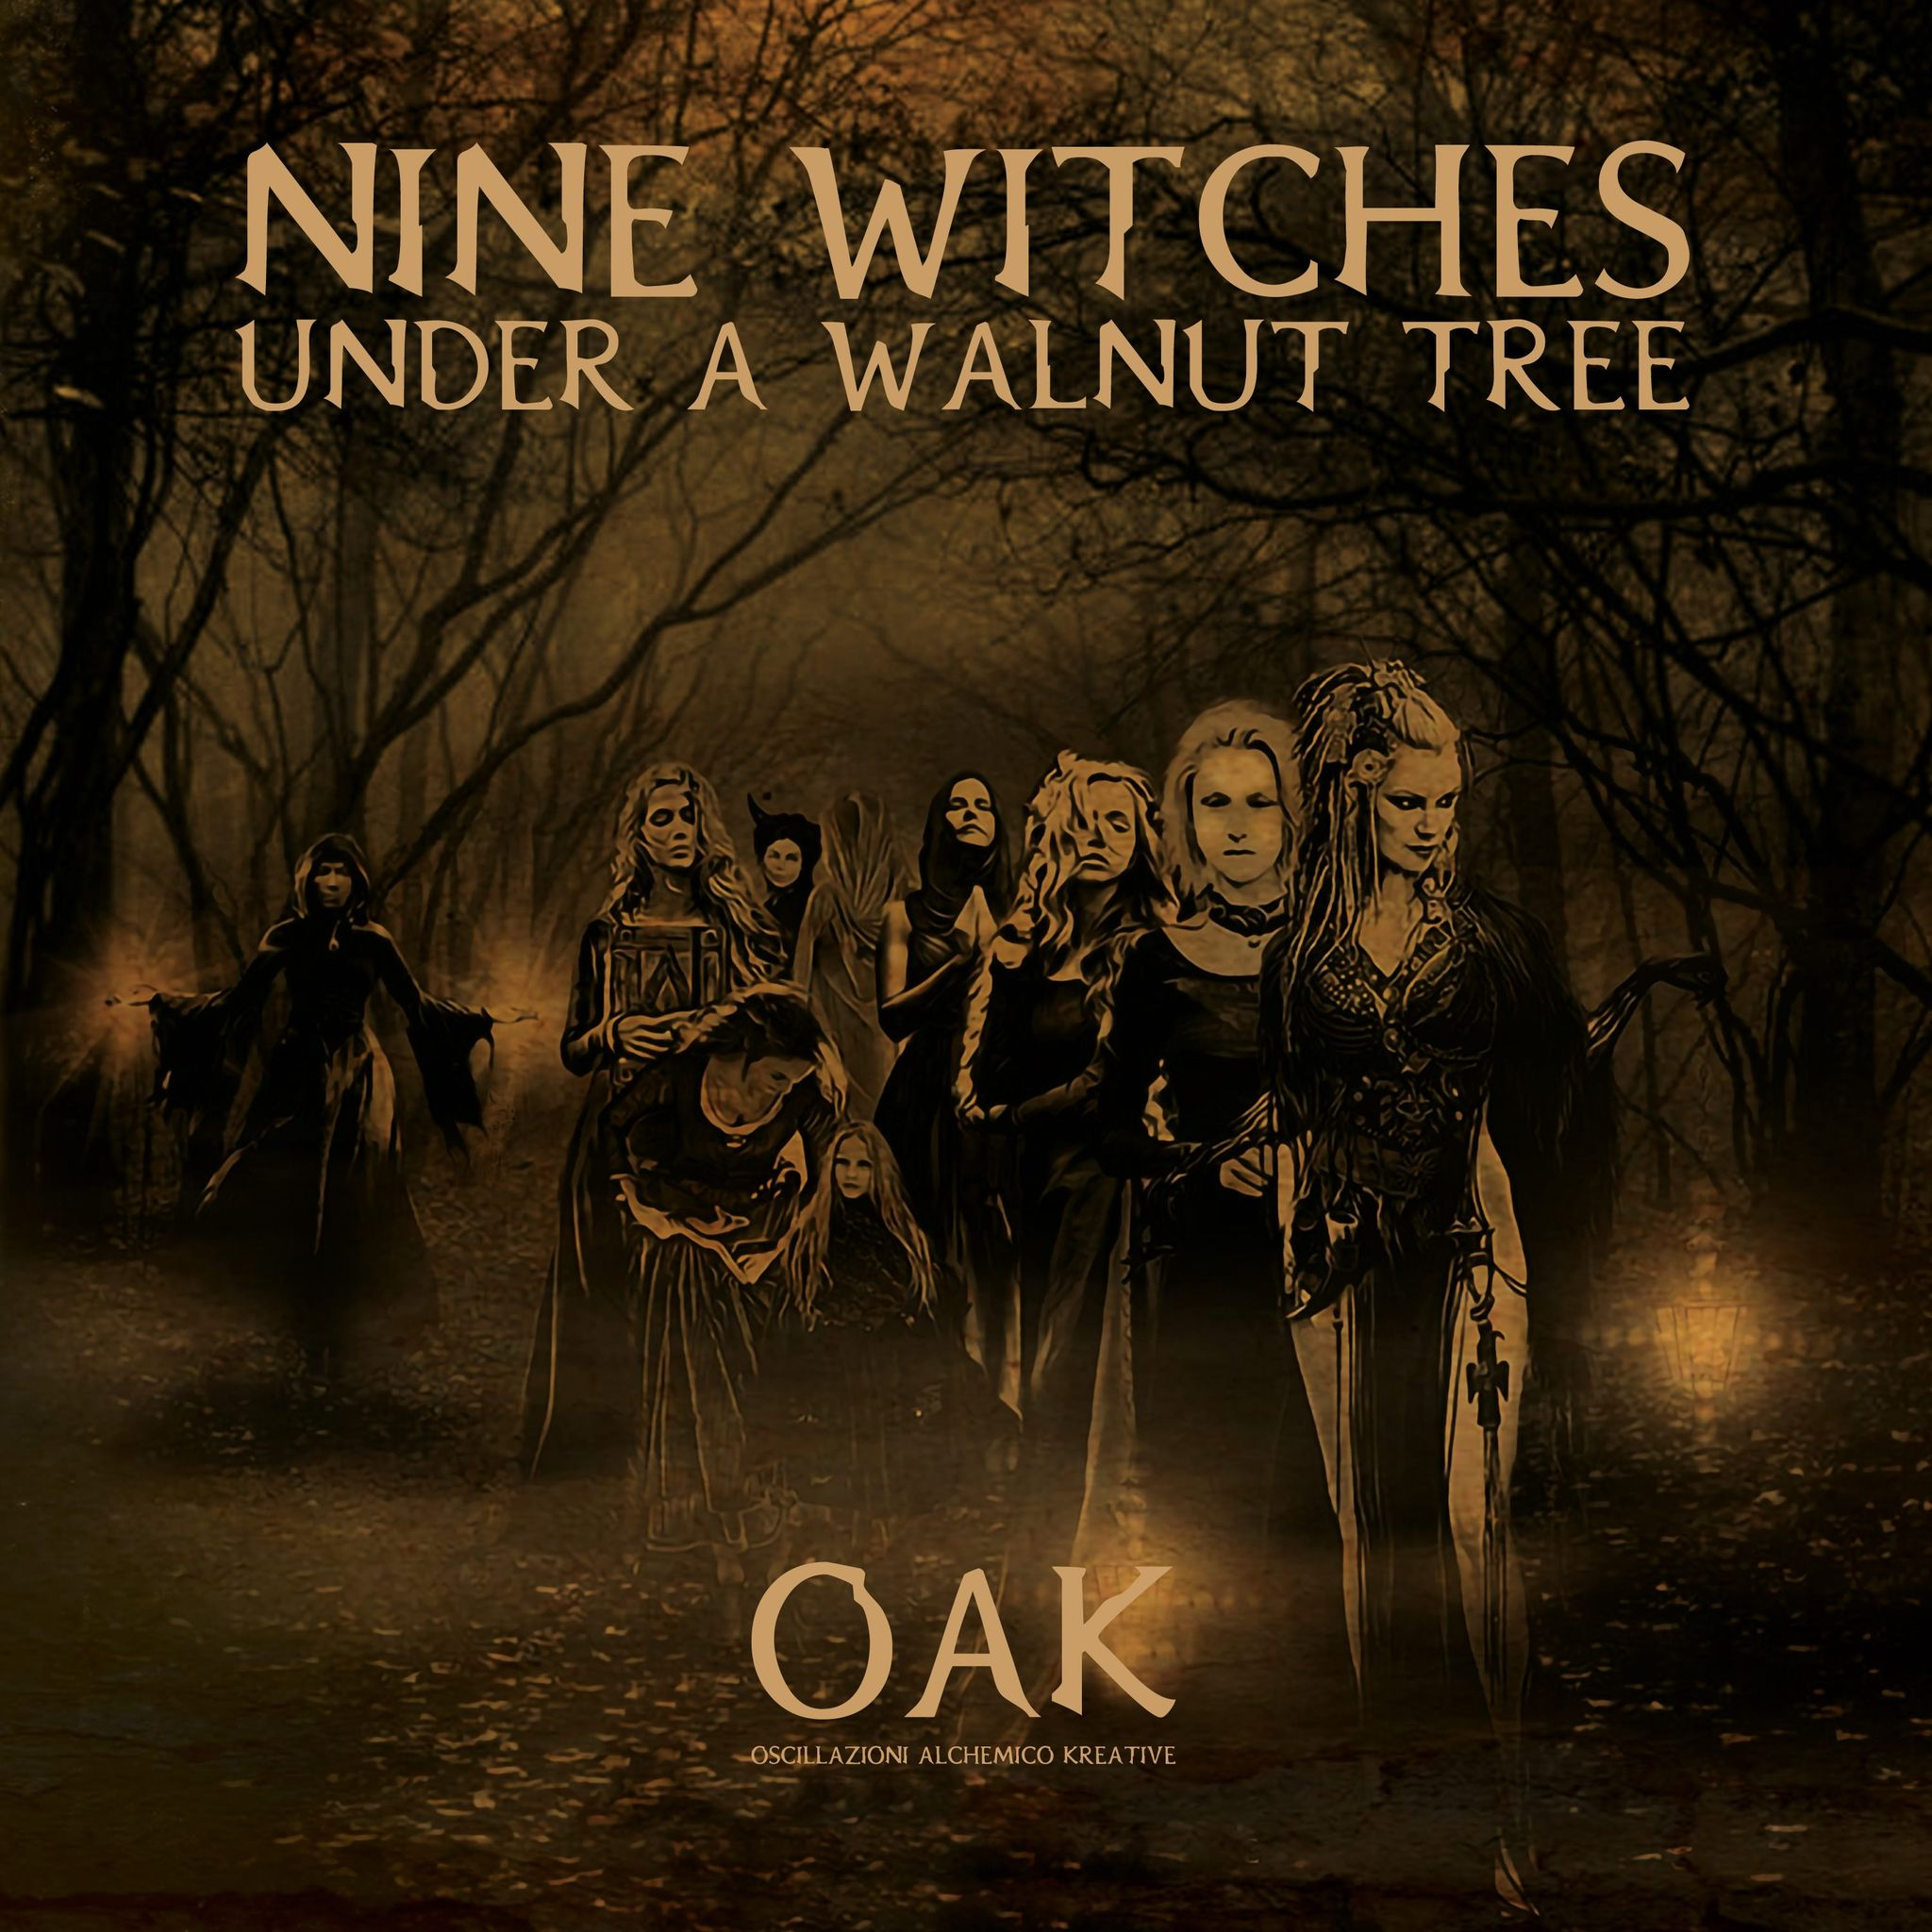 OAK: Nine Witches under a Walnut Tree